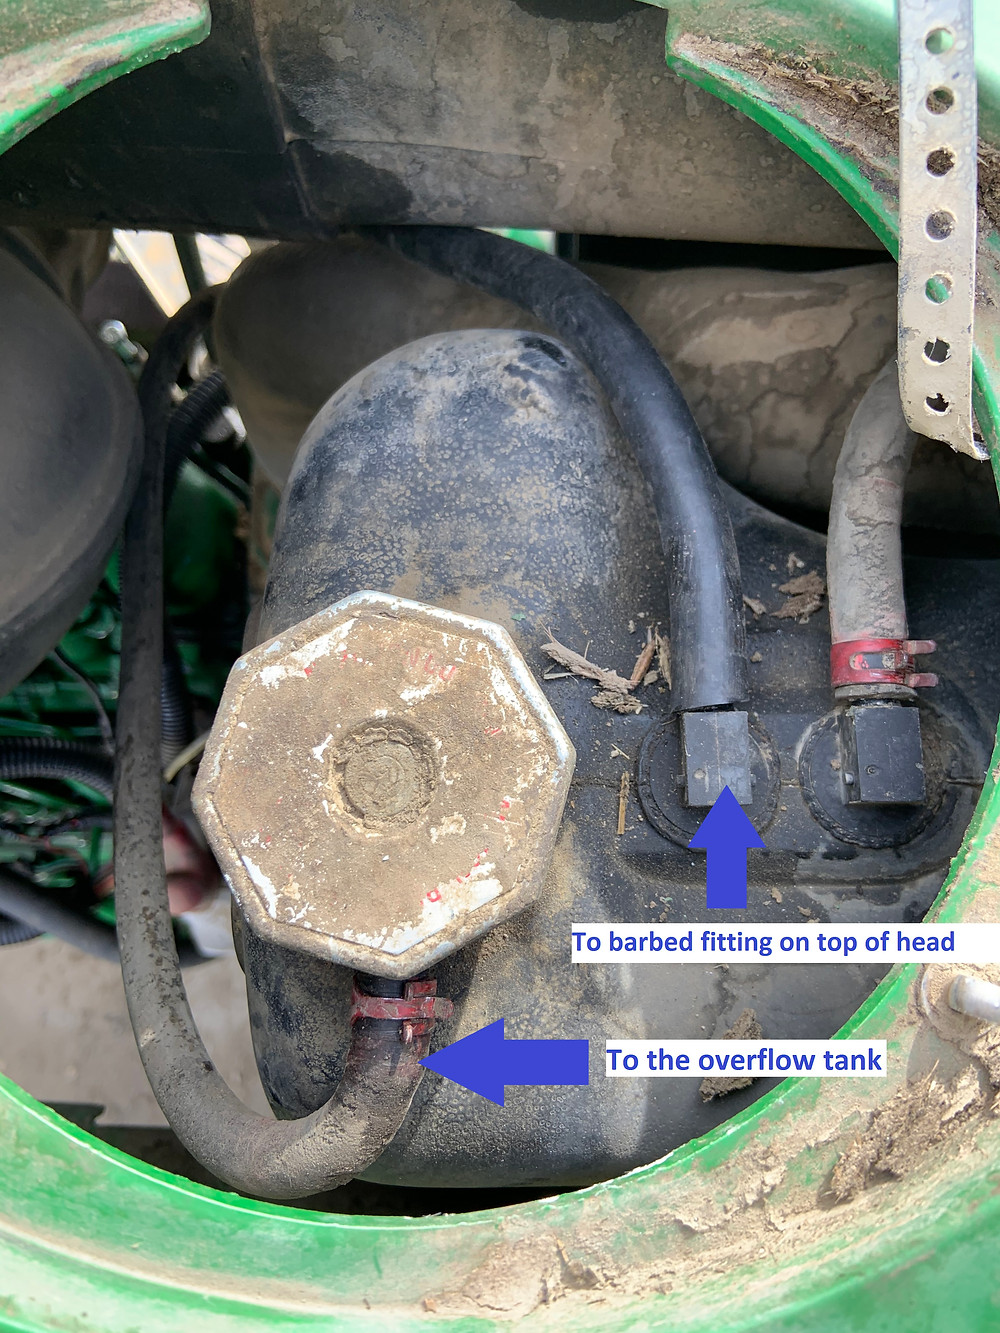 Small diameter coolant lines on John Deere 7810 tractor. The barbed fitting on top of the head appears to be for an air-bleed in the coolant system.